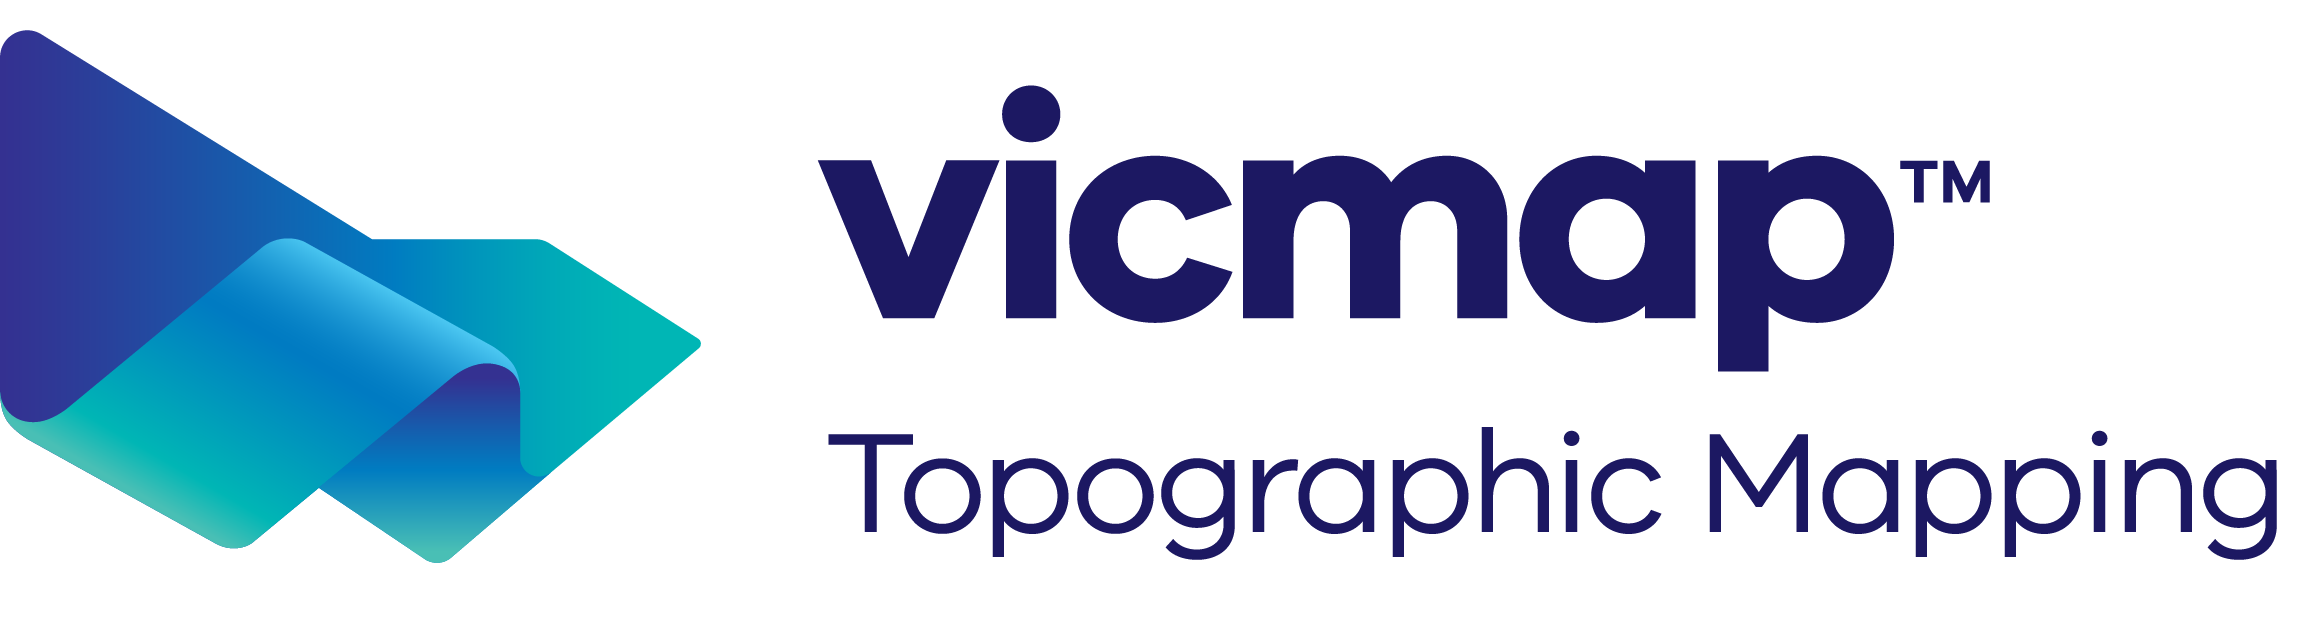 Vicmap Topographic Mapping logo